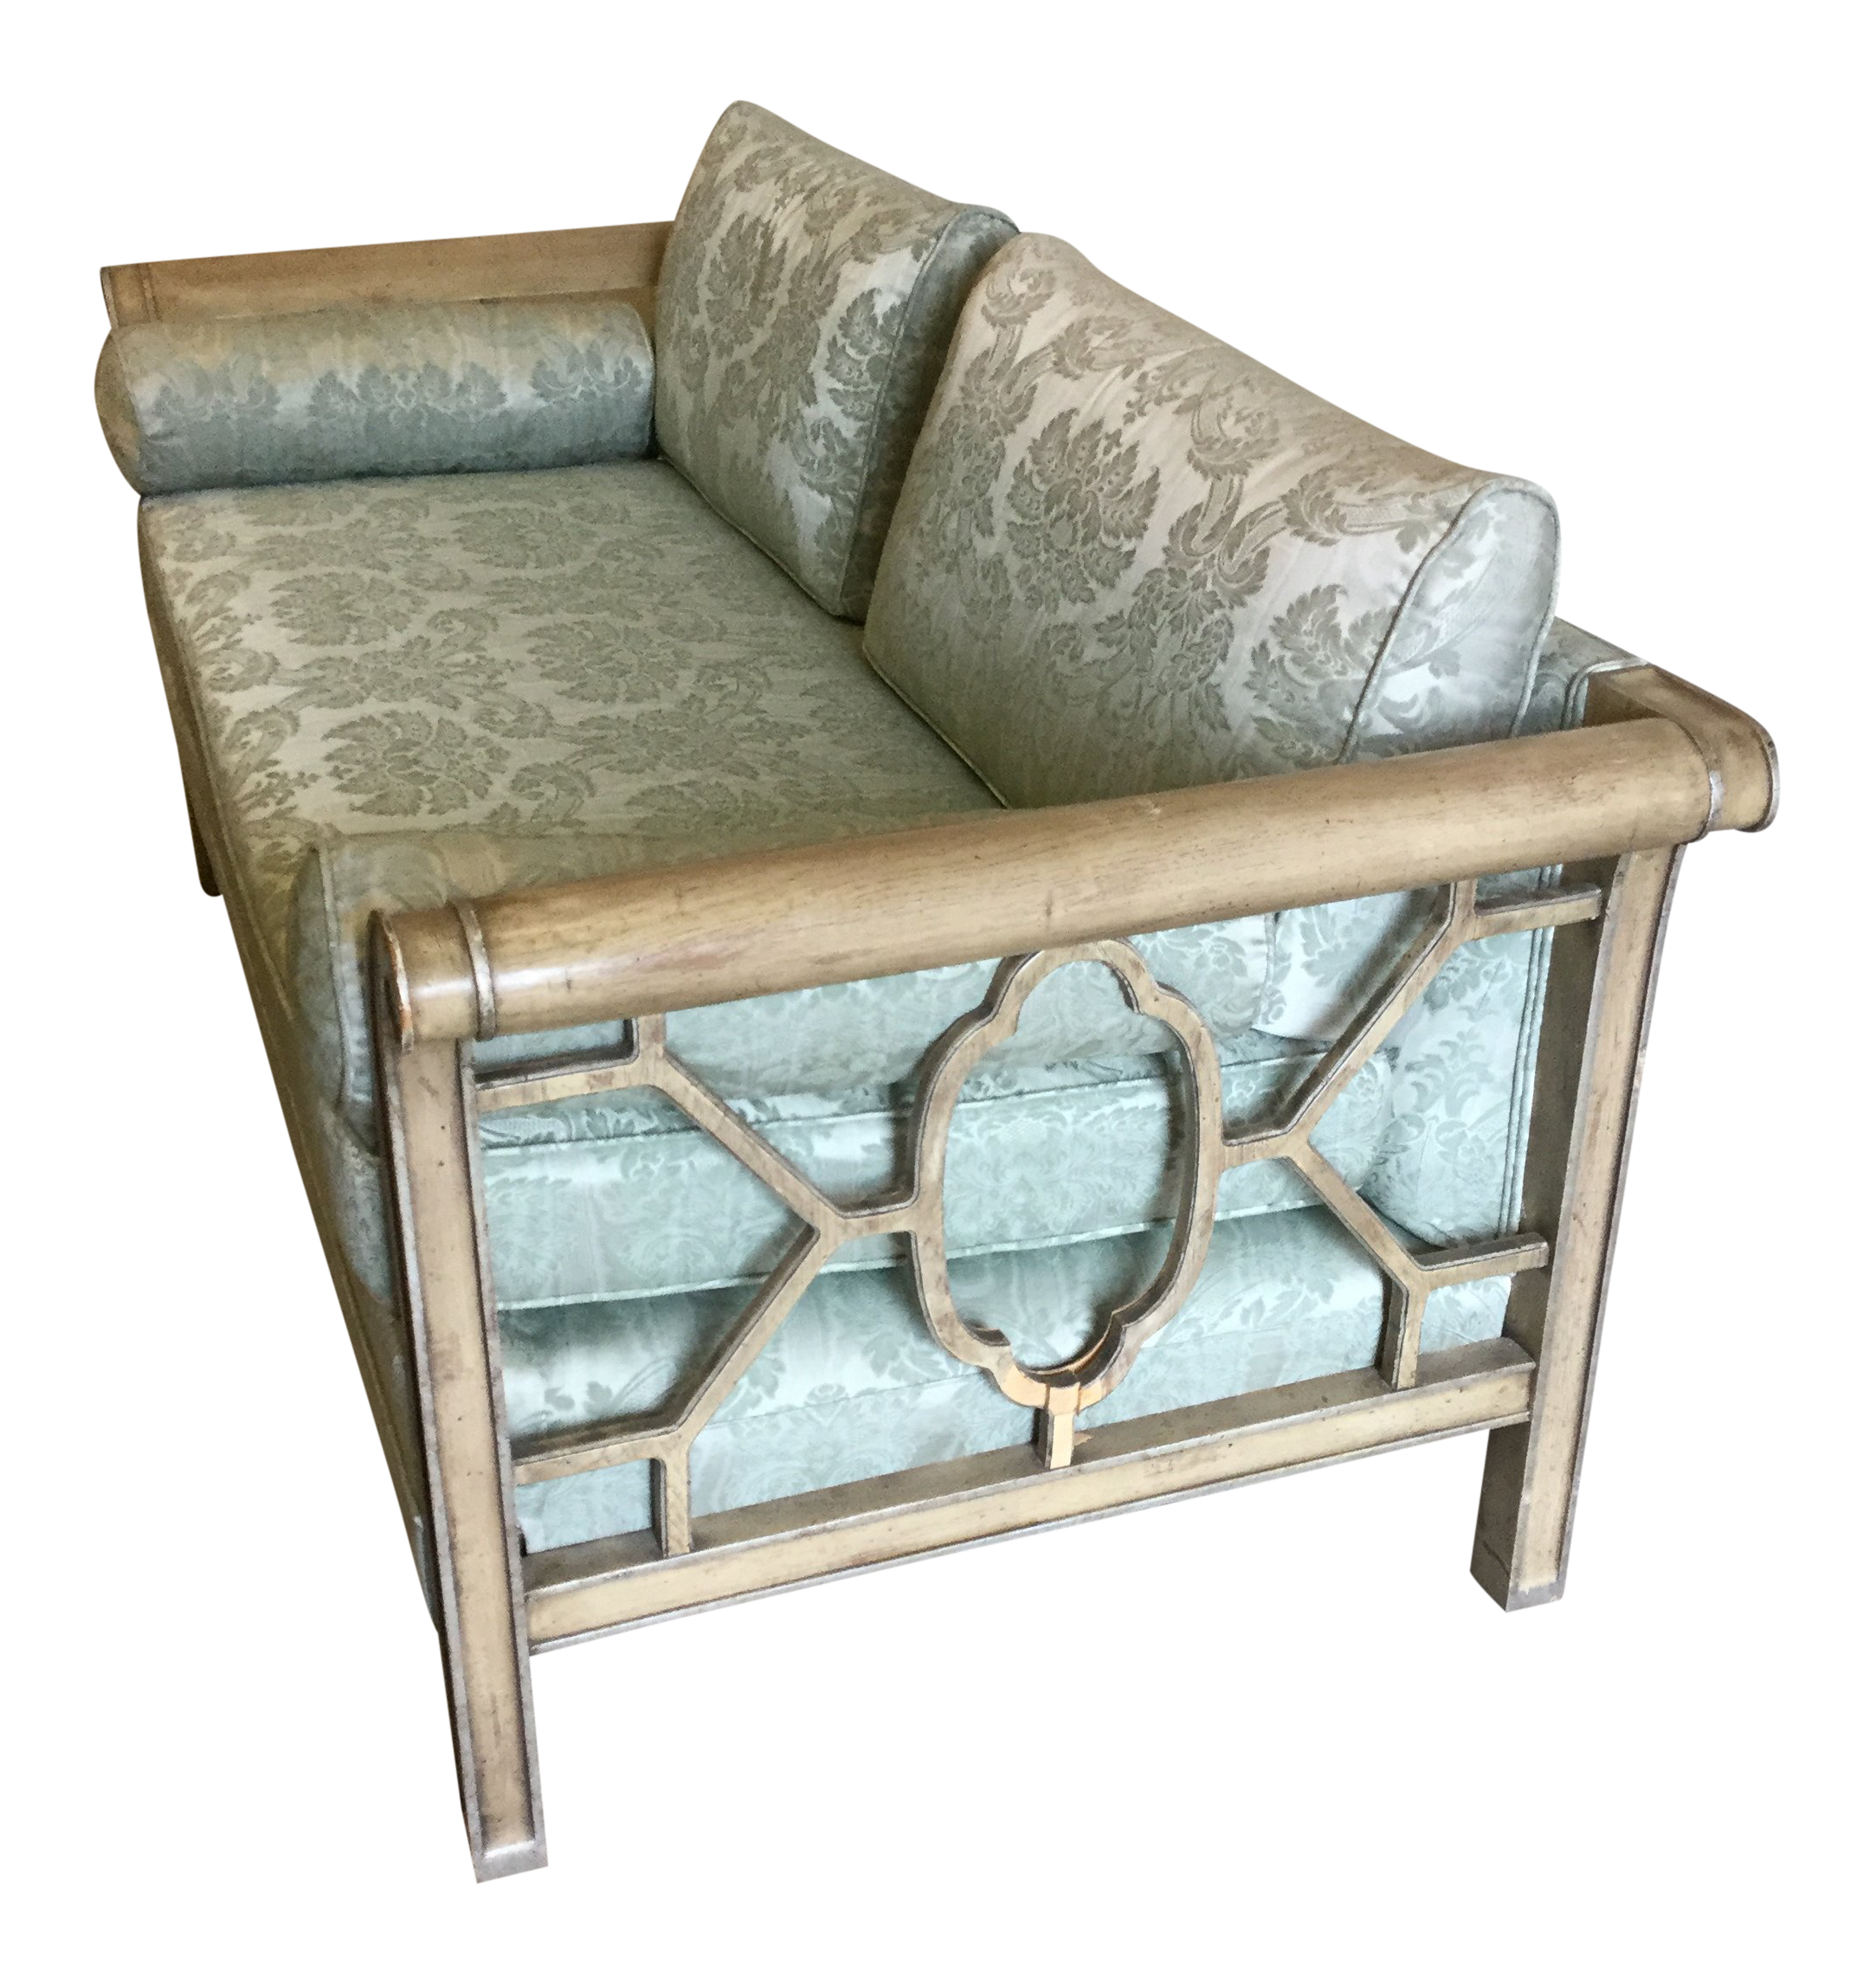 Palm Beach Regency Style Fretwork Love Seat For Sale